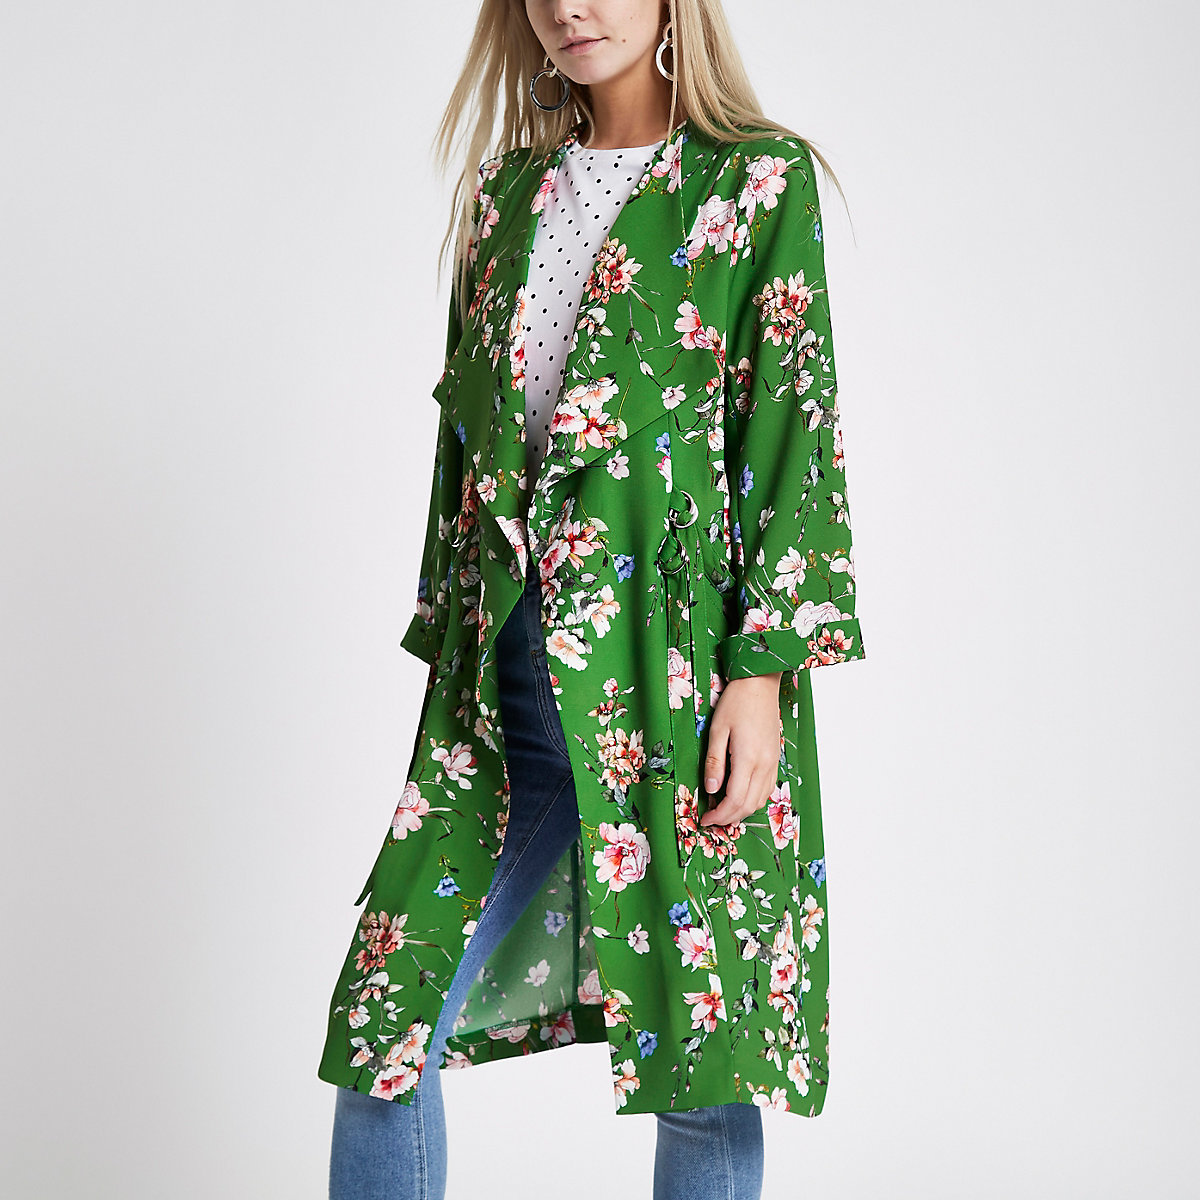 Petite green floral D-ring side duster coat